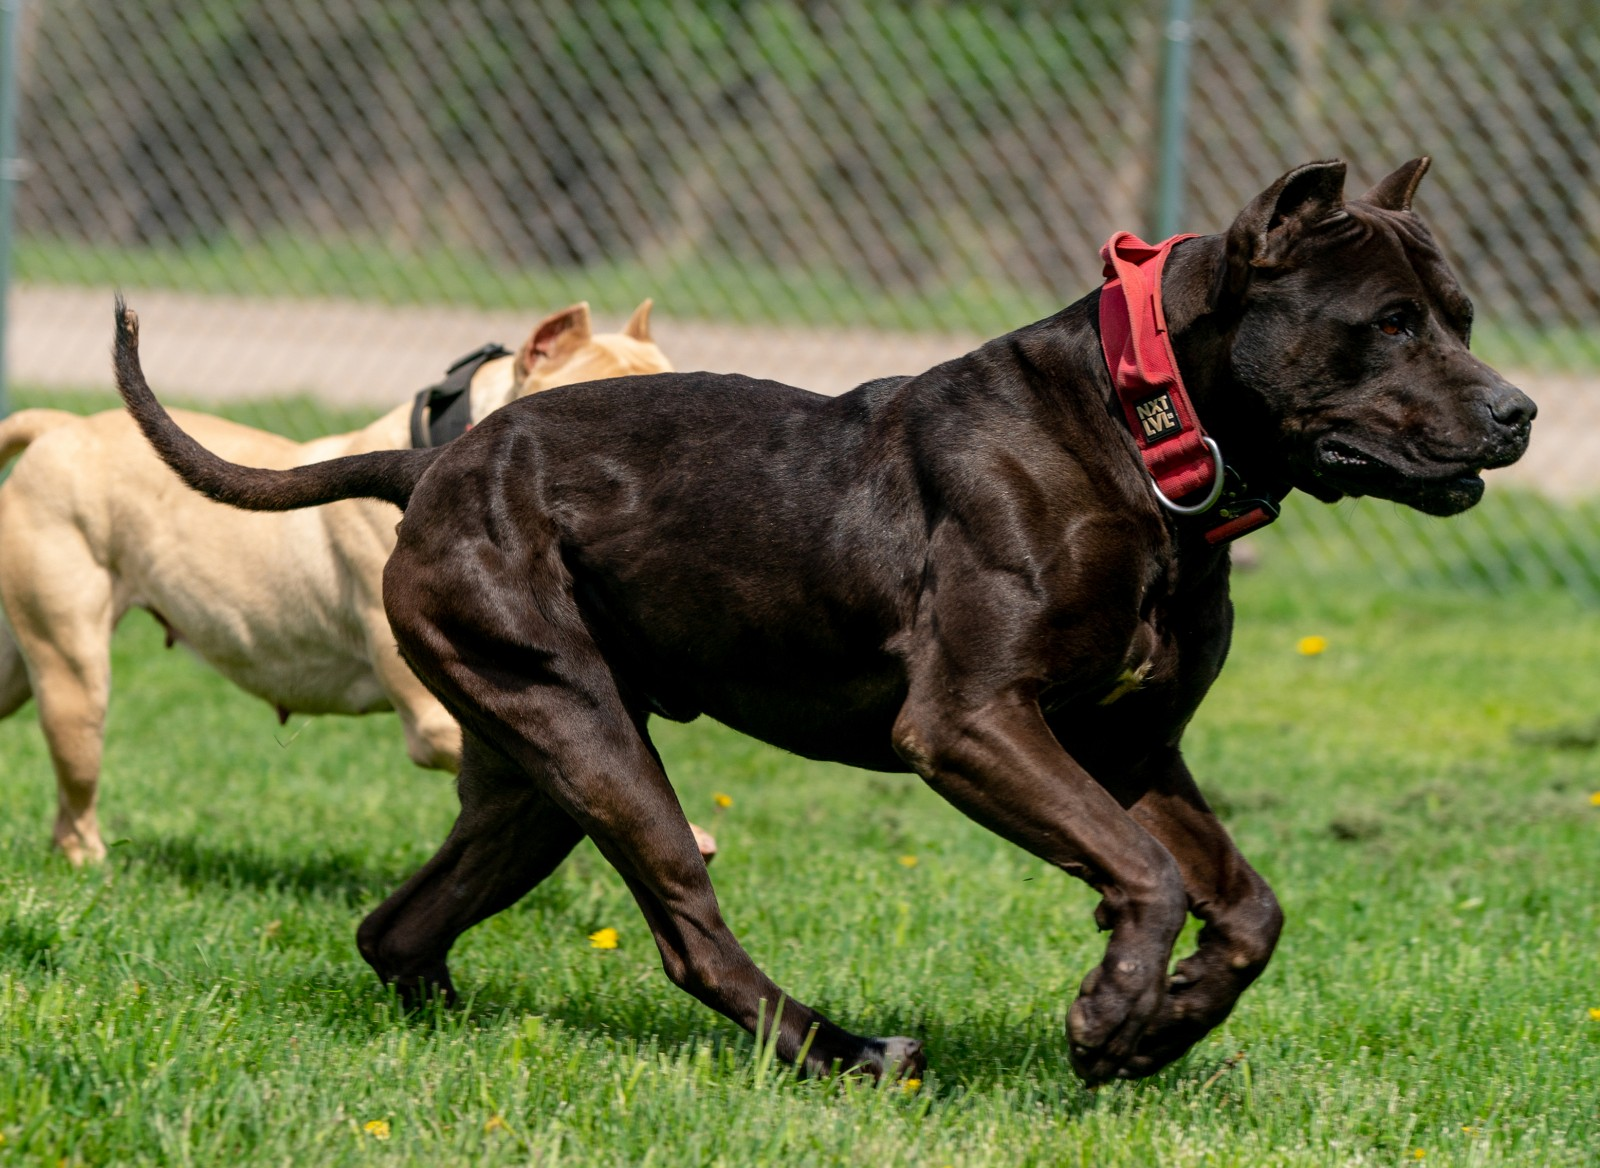 Unleashed Kennelz black XL pit bull shows off his structure in this shot, mid stride alongside champagne female, Chevy.